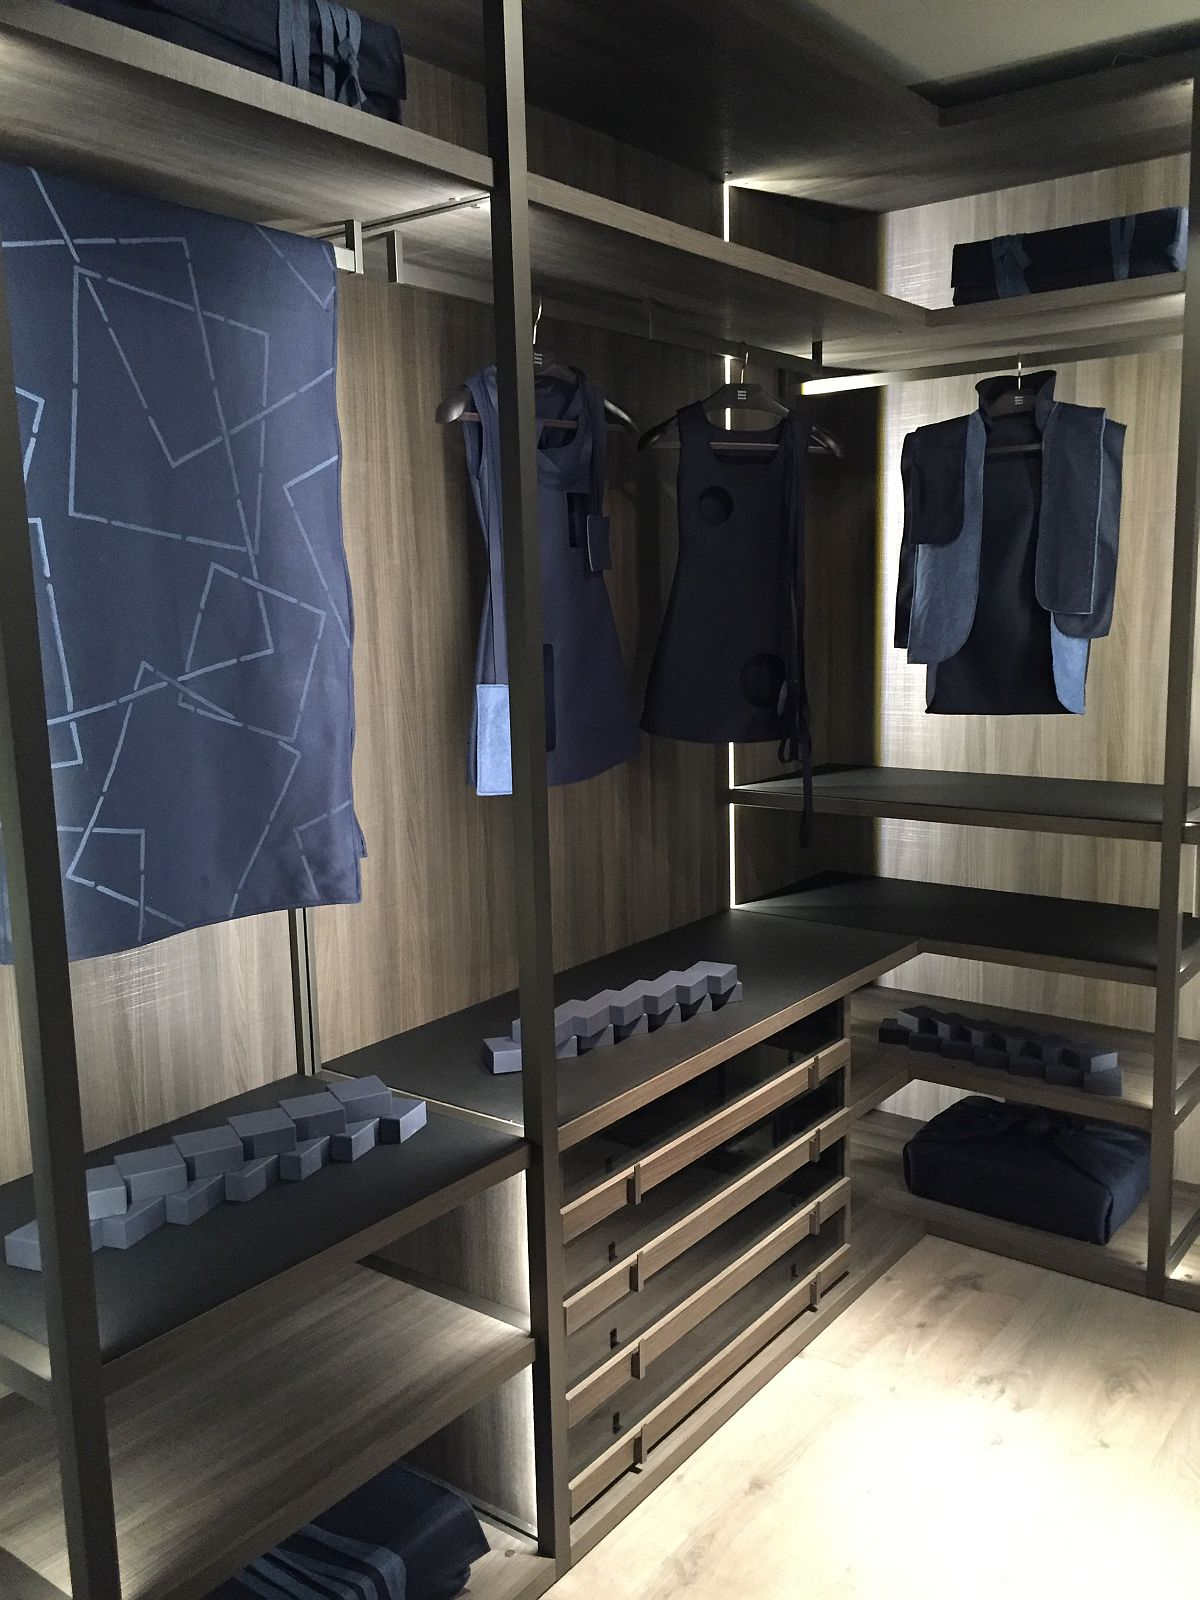 Gorgeous walk-in closet from MisuraEmme at Milan 2016